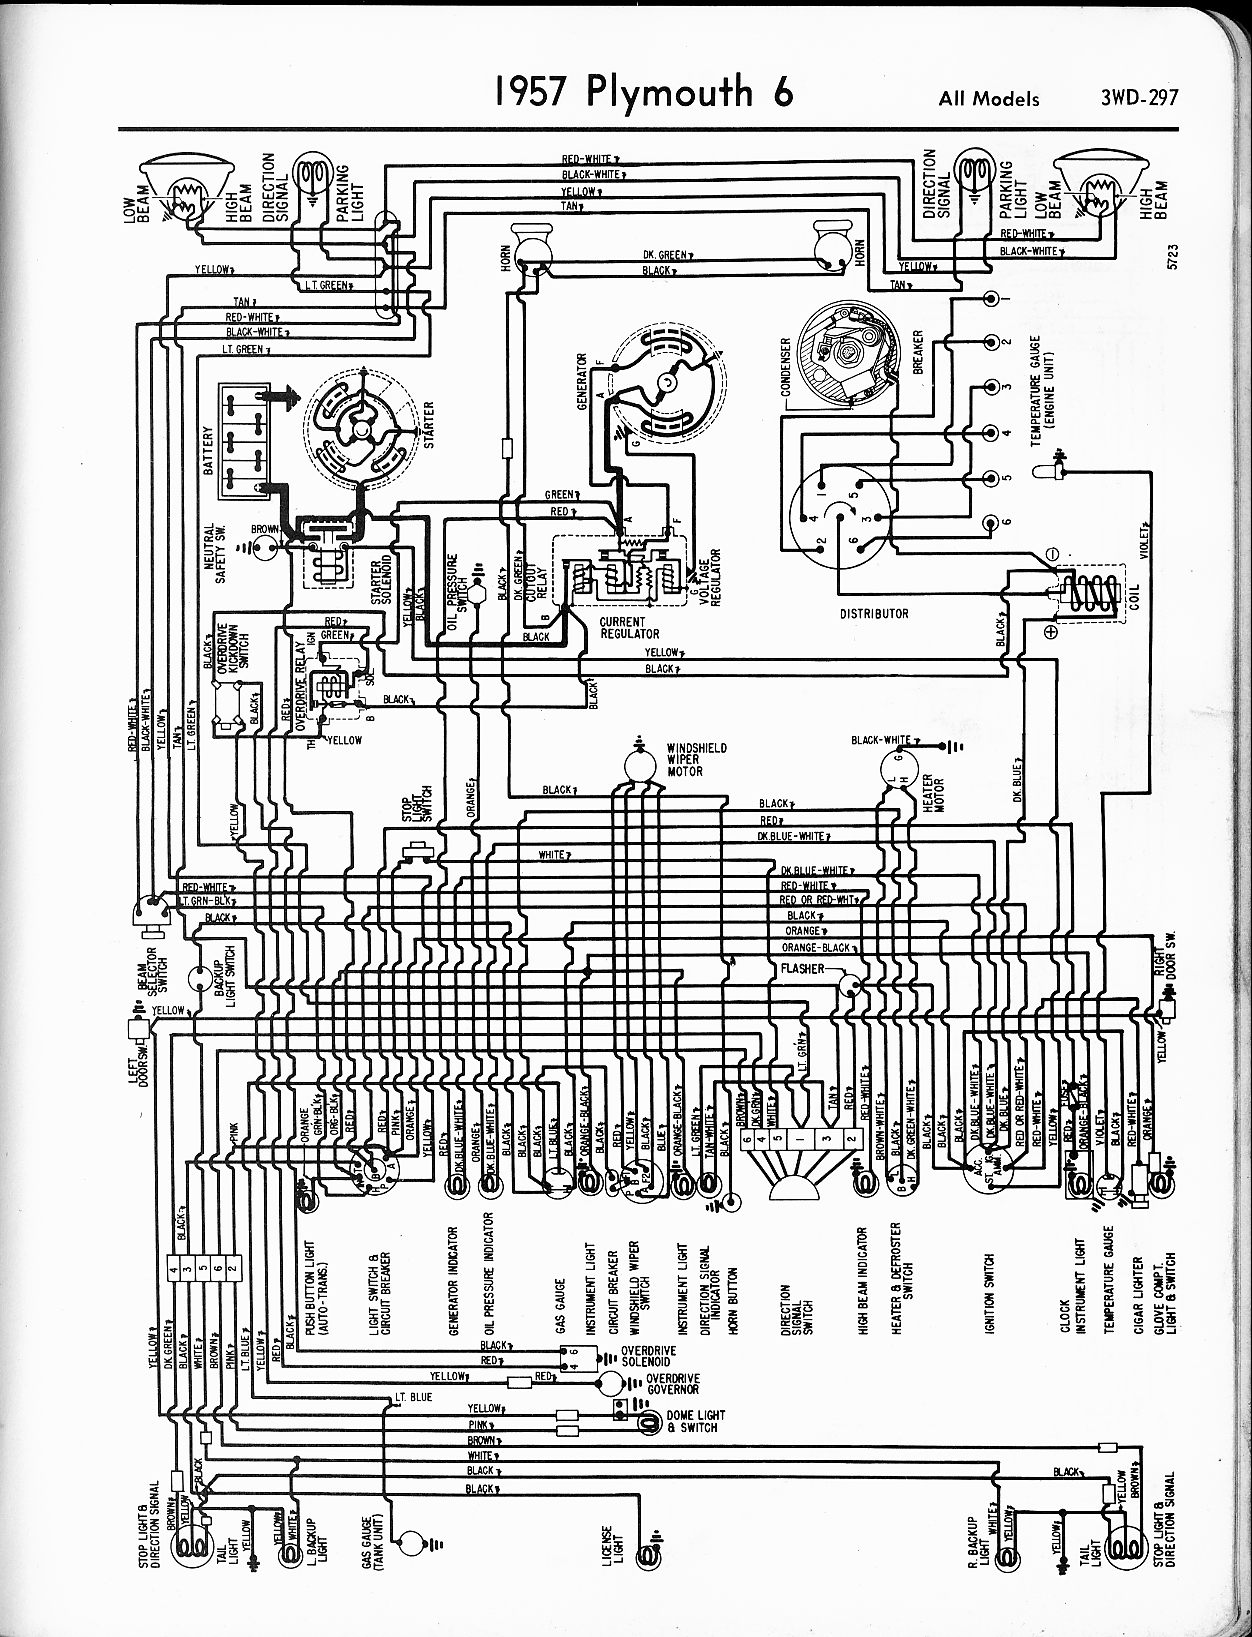 1969 Plymouth Turn Signal Wiring Diagram Real Chevy Get Free Image About 1958 Online Schematics Rh Delvato Co 1976 Chevrolet